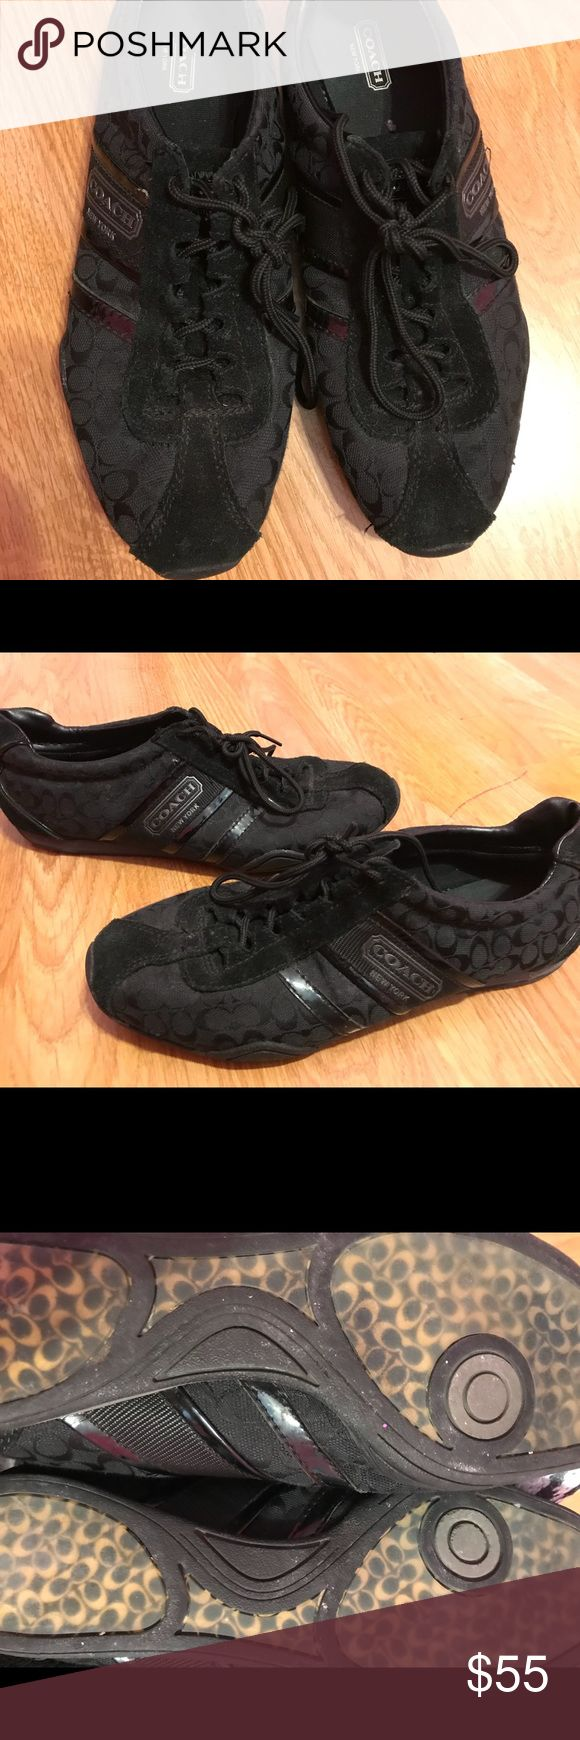 Coach tennis shoes Black coach tennis shoes. Size 9.5. Only wore a couple of times and in great conditions Coach Shoes Sneakers